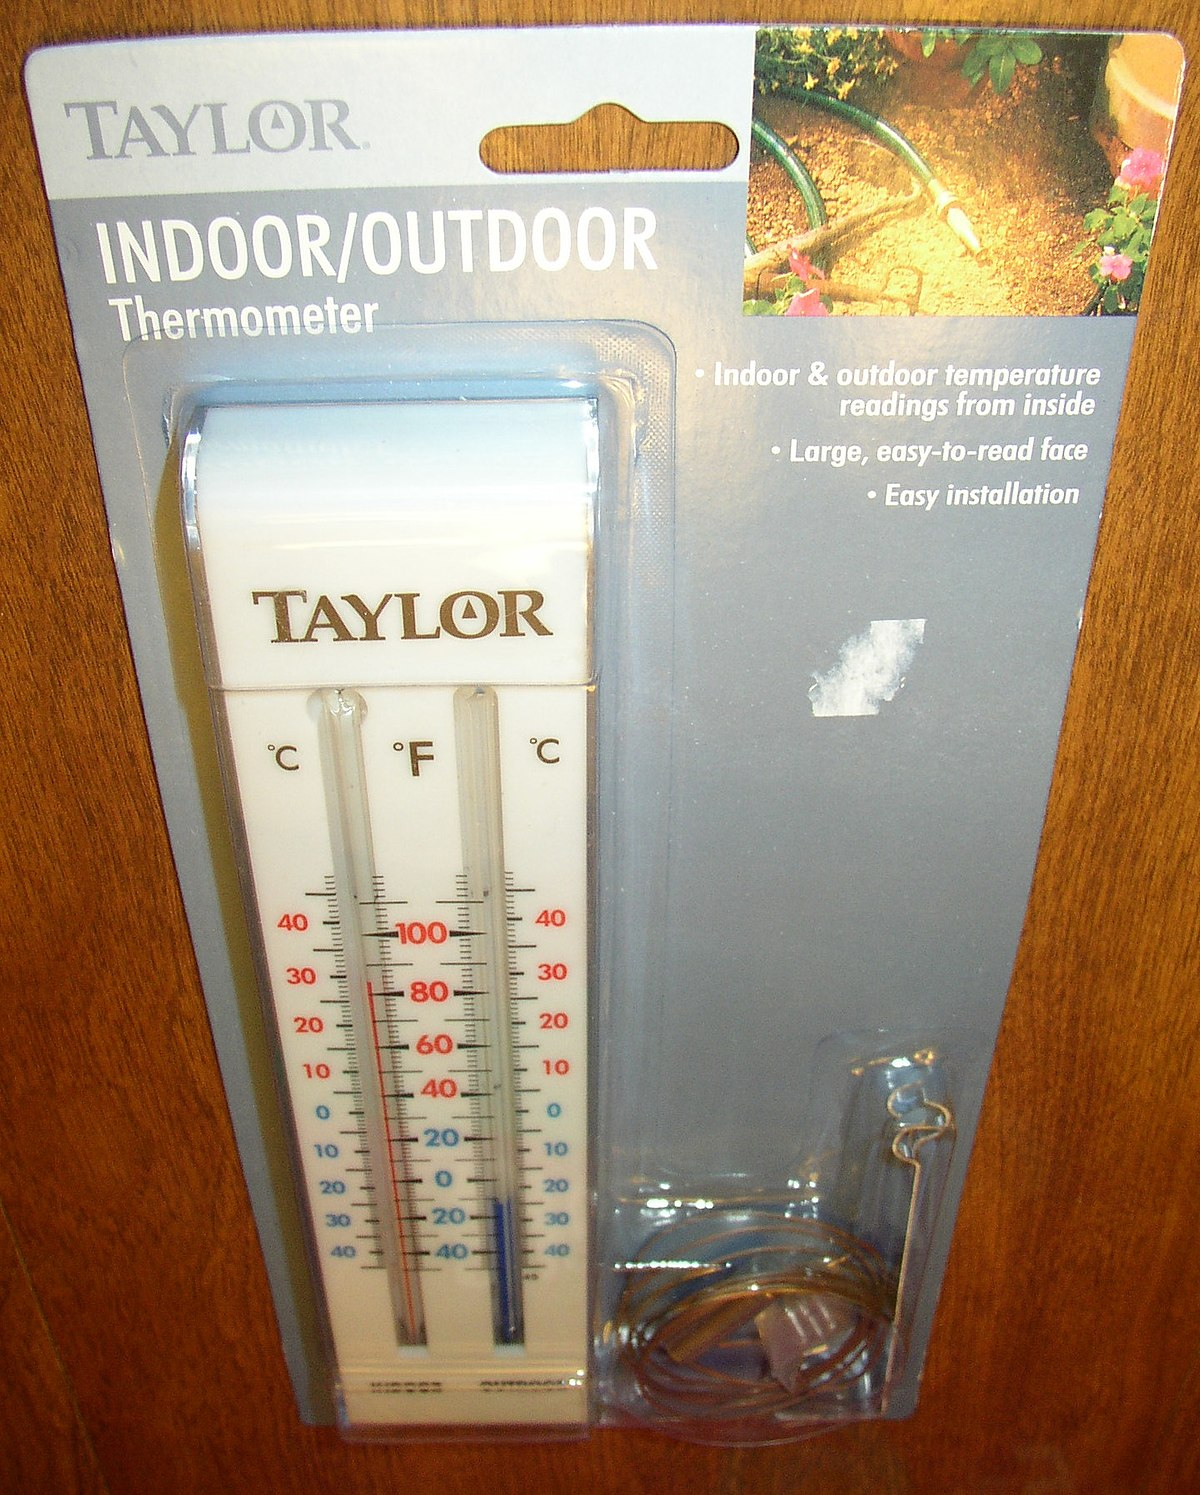 Indoor–outdoor thermometer - Wikipedia